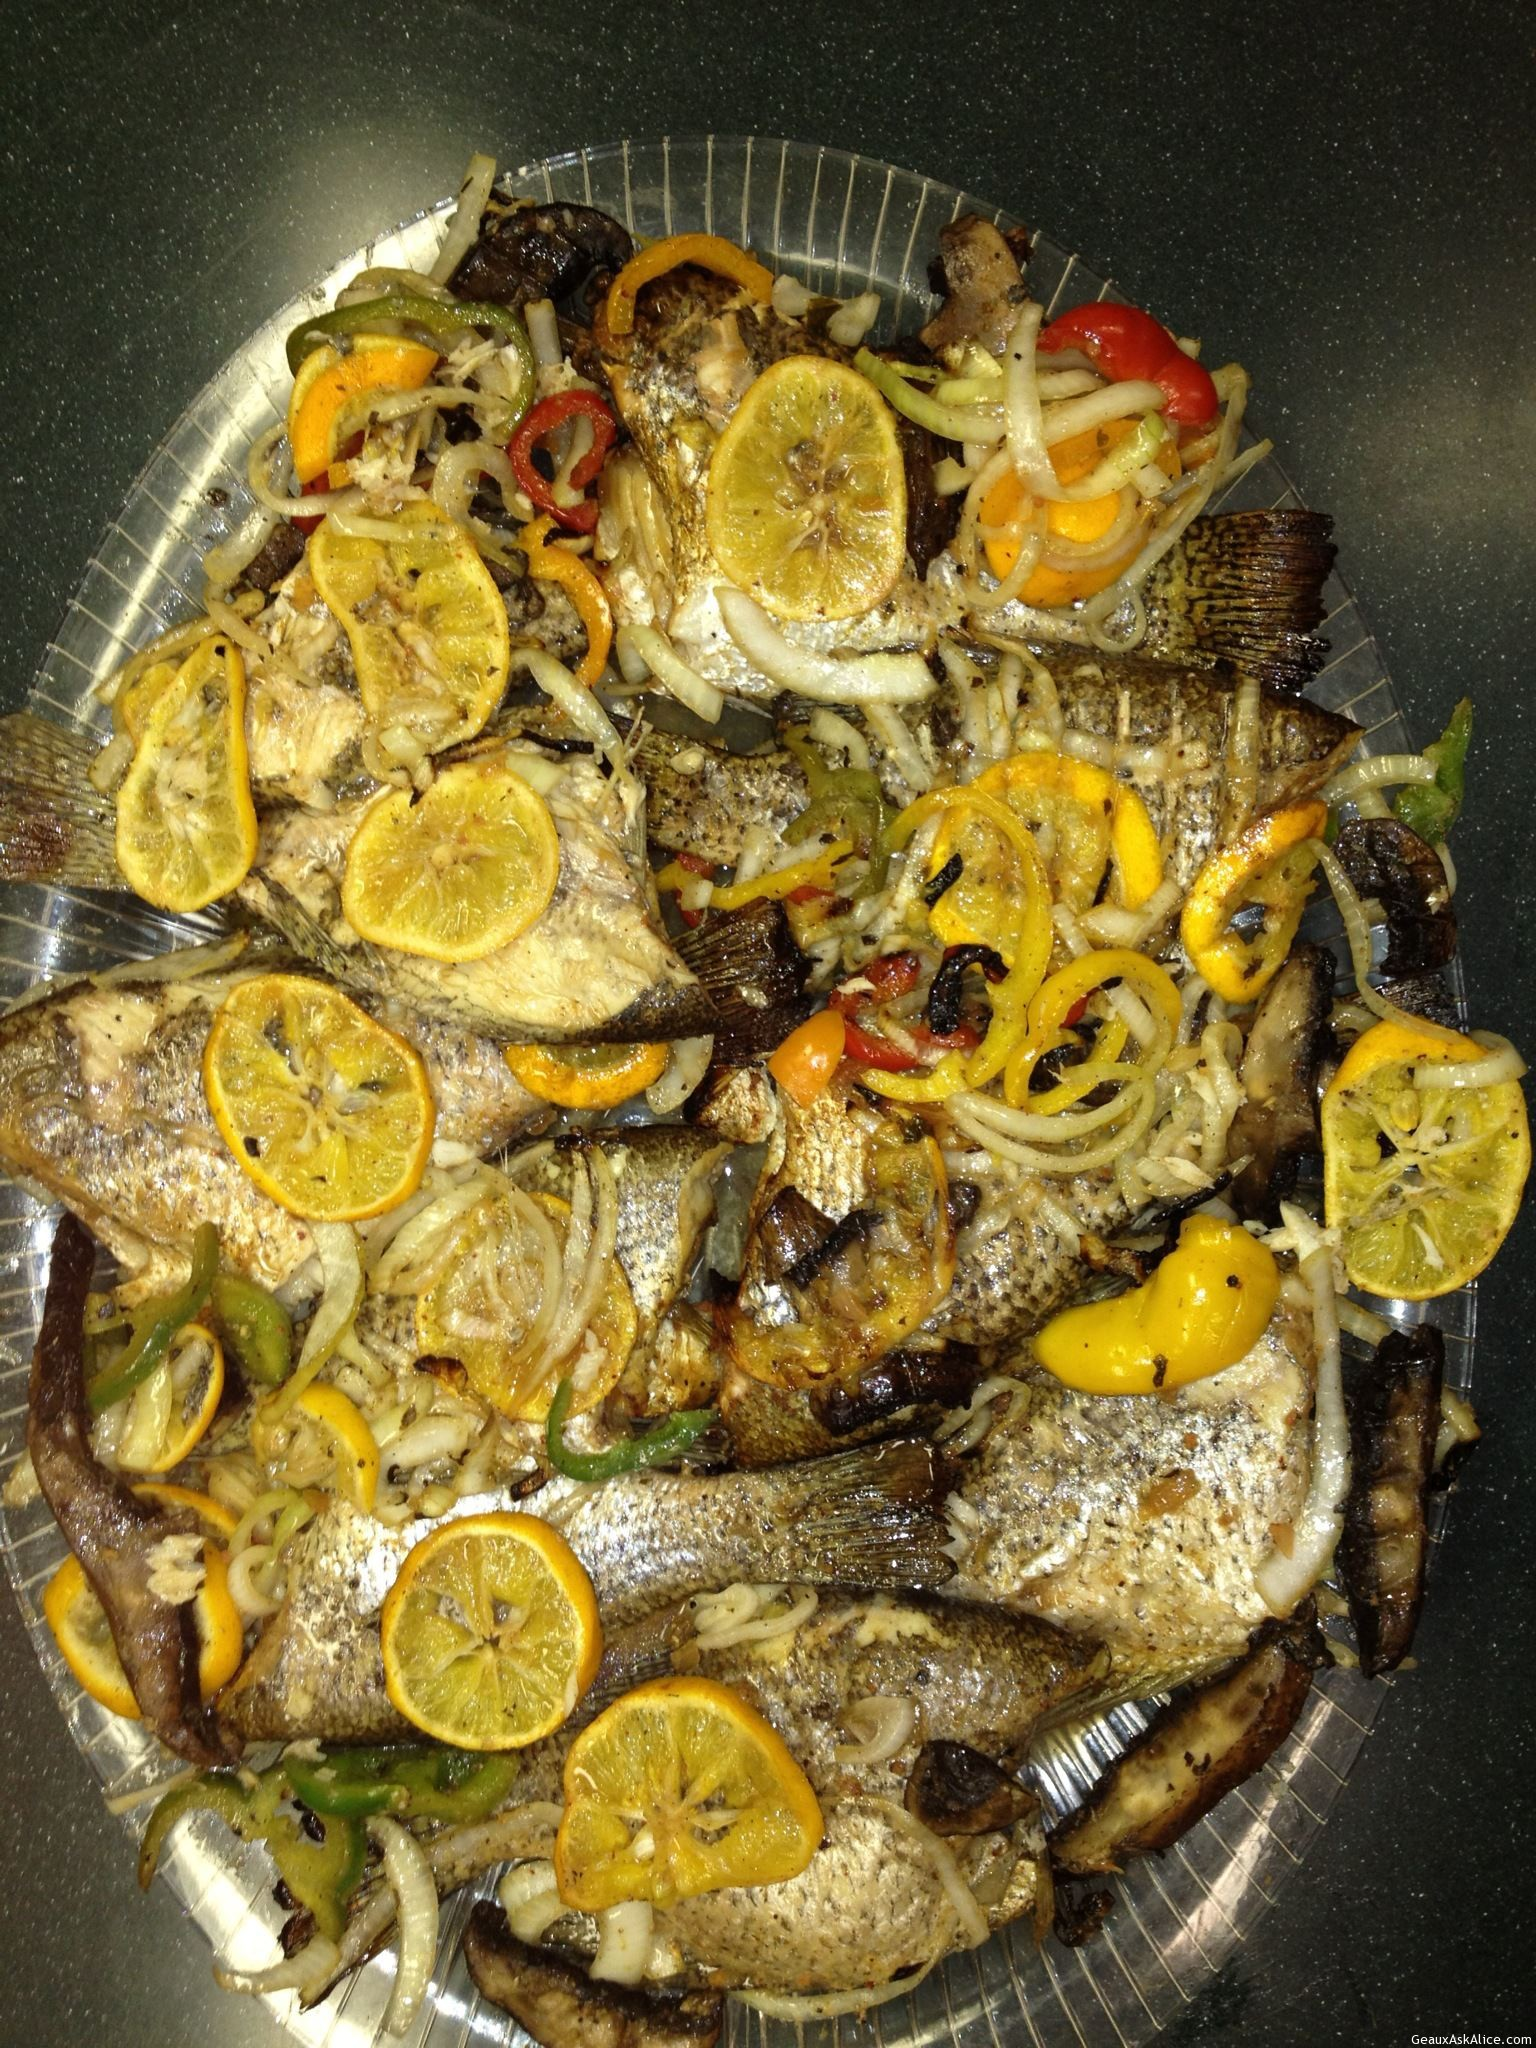 Grilled Fish With Lemons, Mushrooms, Bell Peppers & Onions